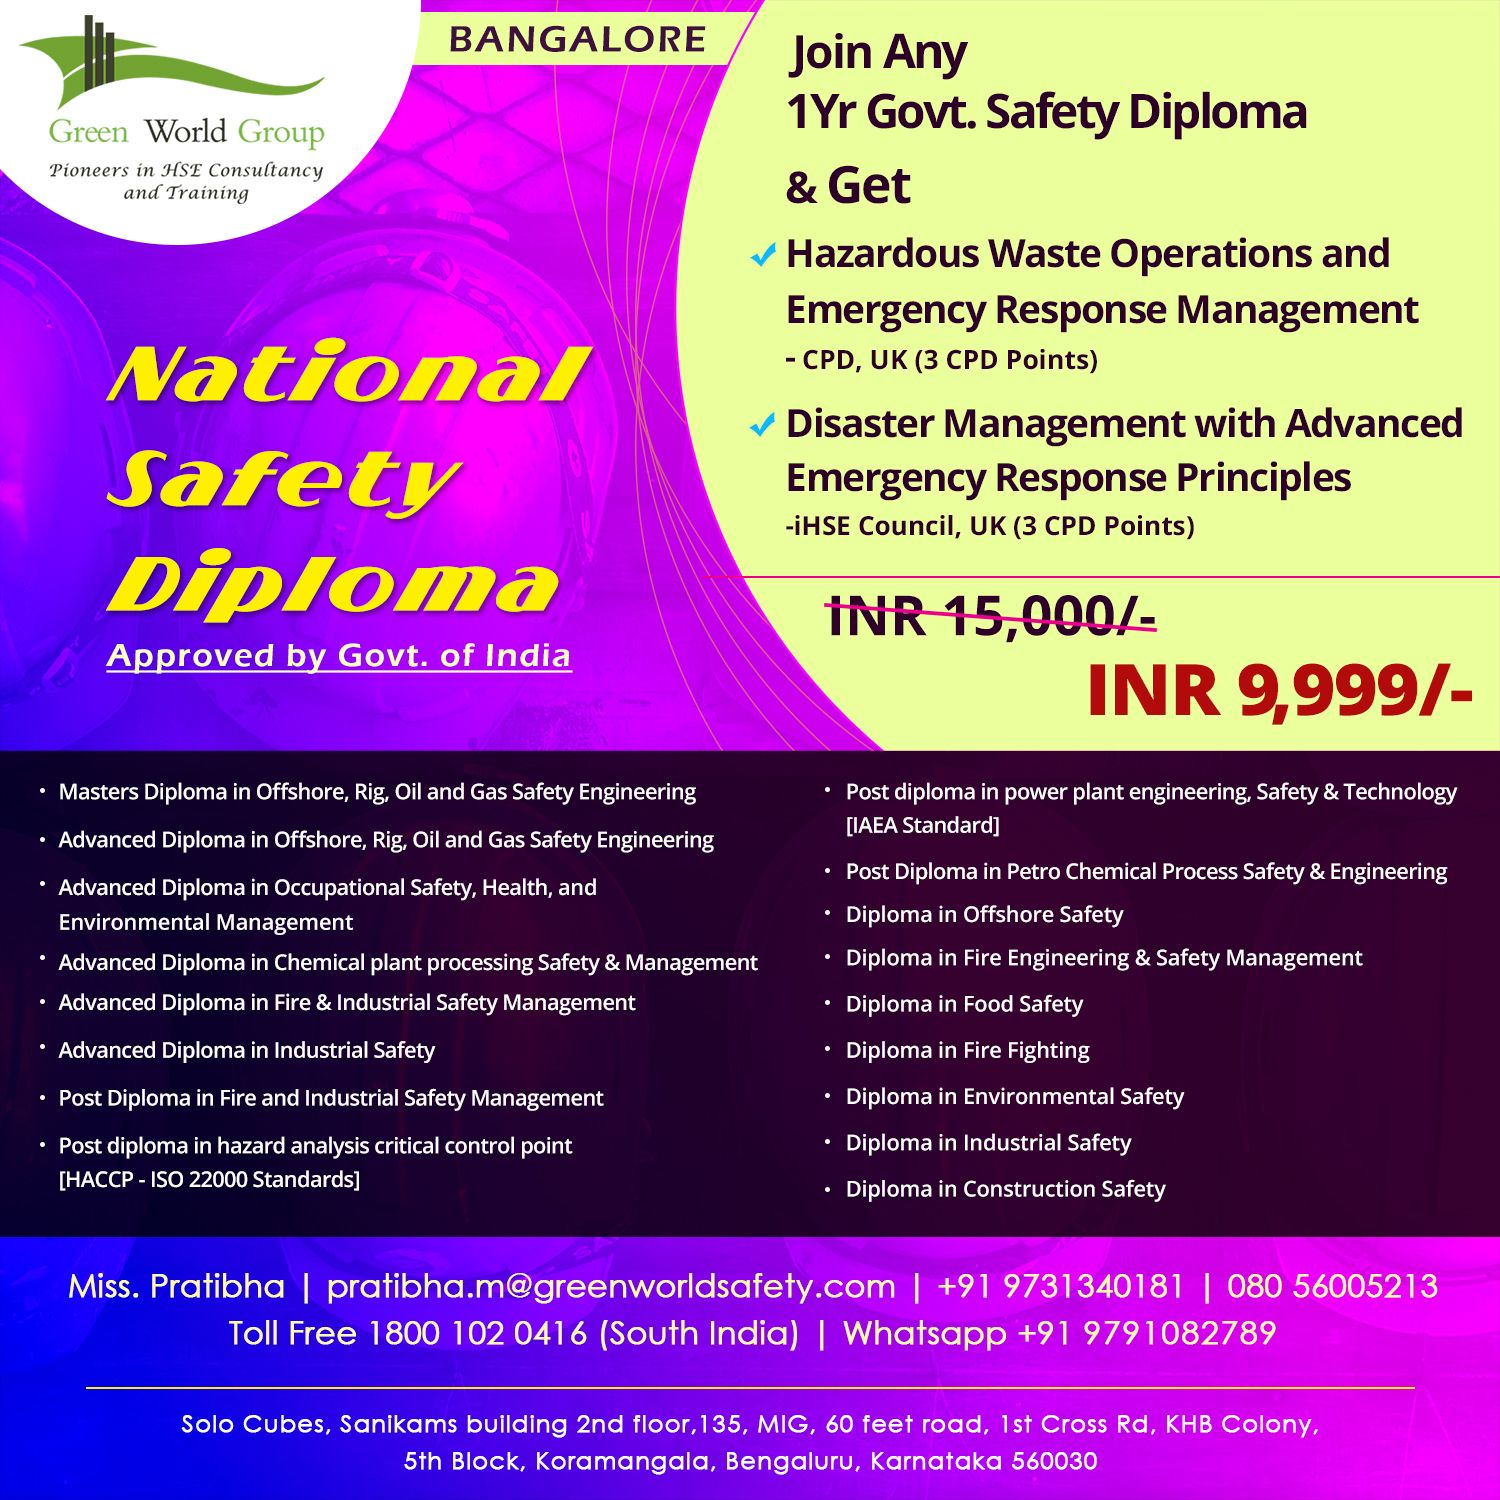 Green World Group offers National Safety Diploma in